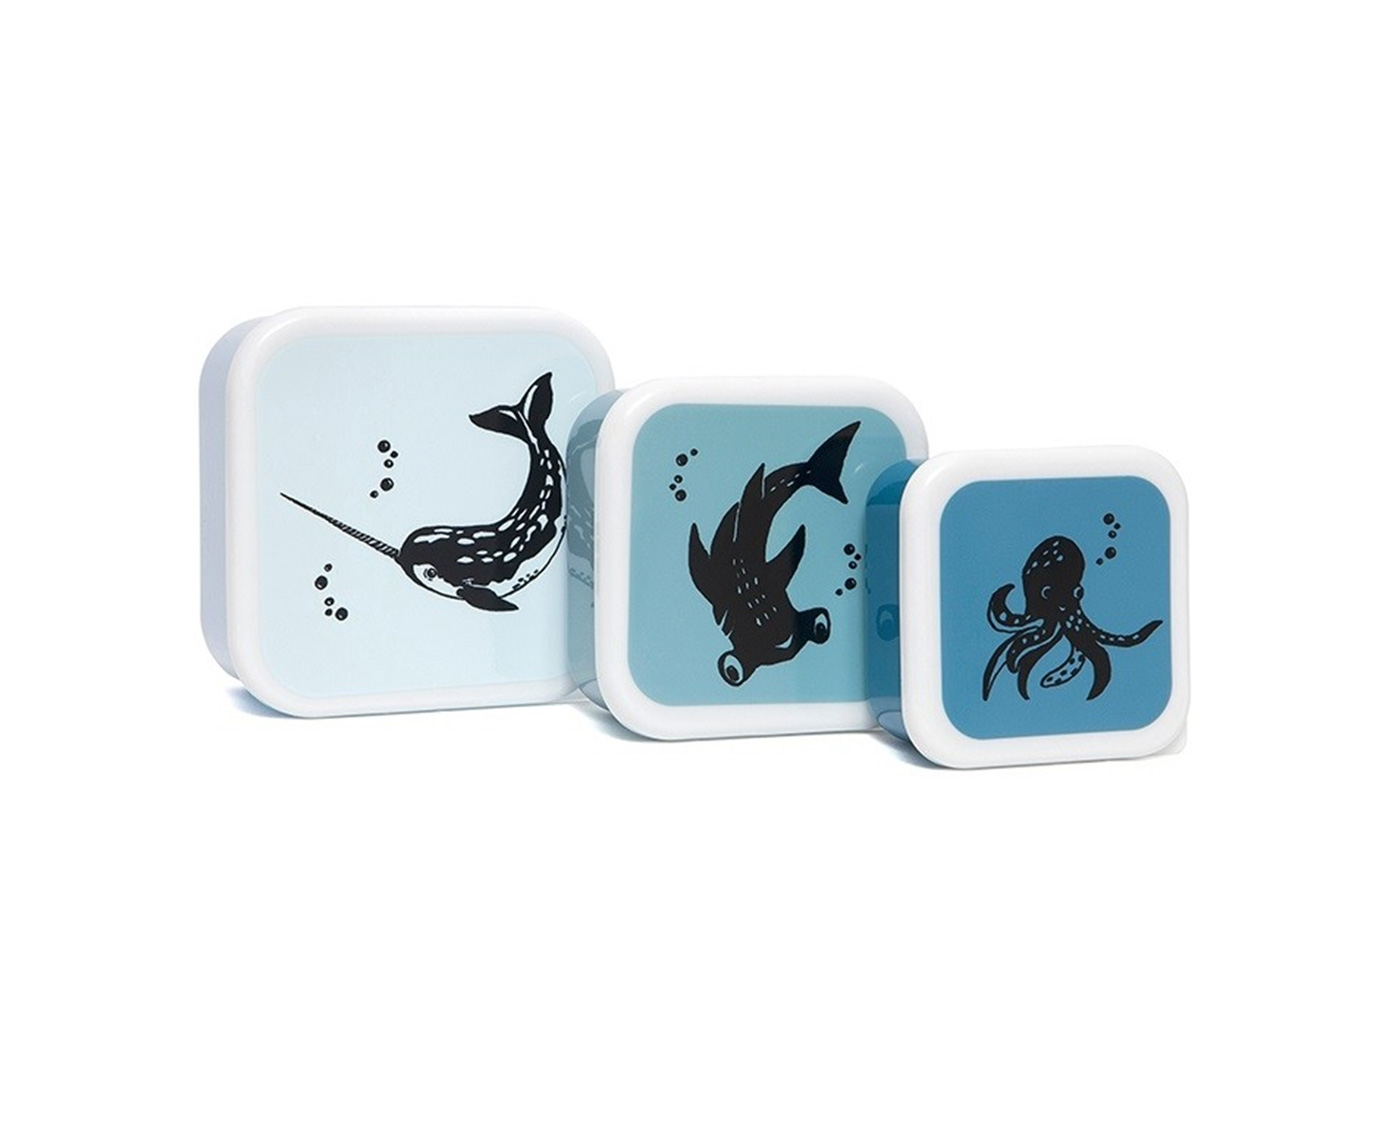 Snackdoosjes 'Sea animals' kleur